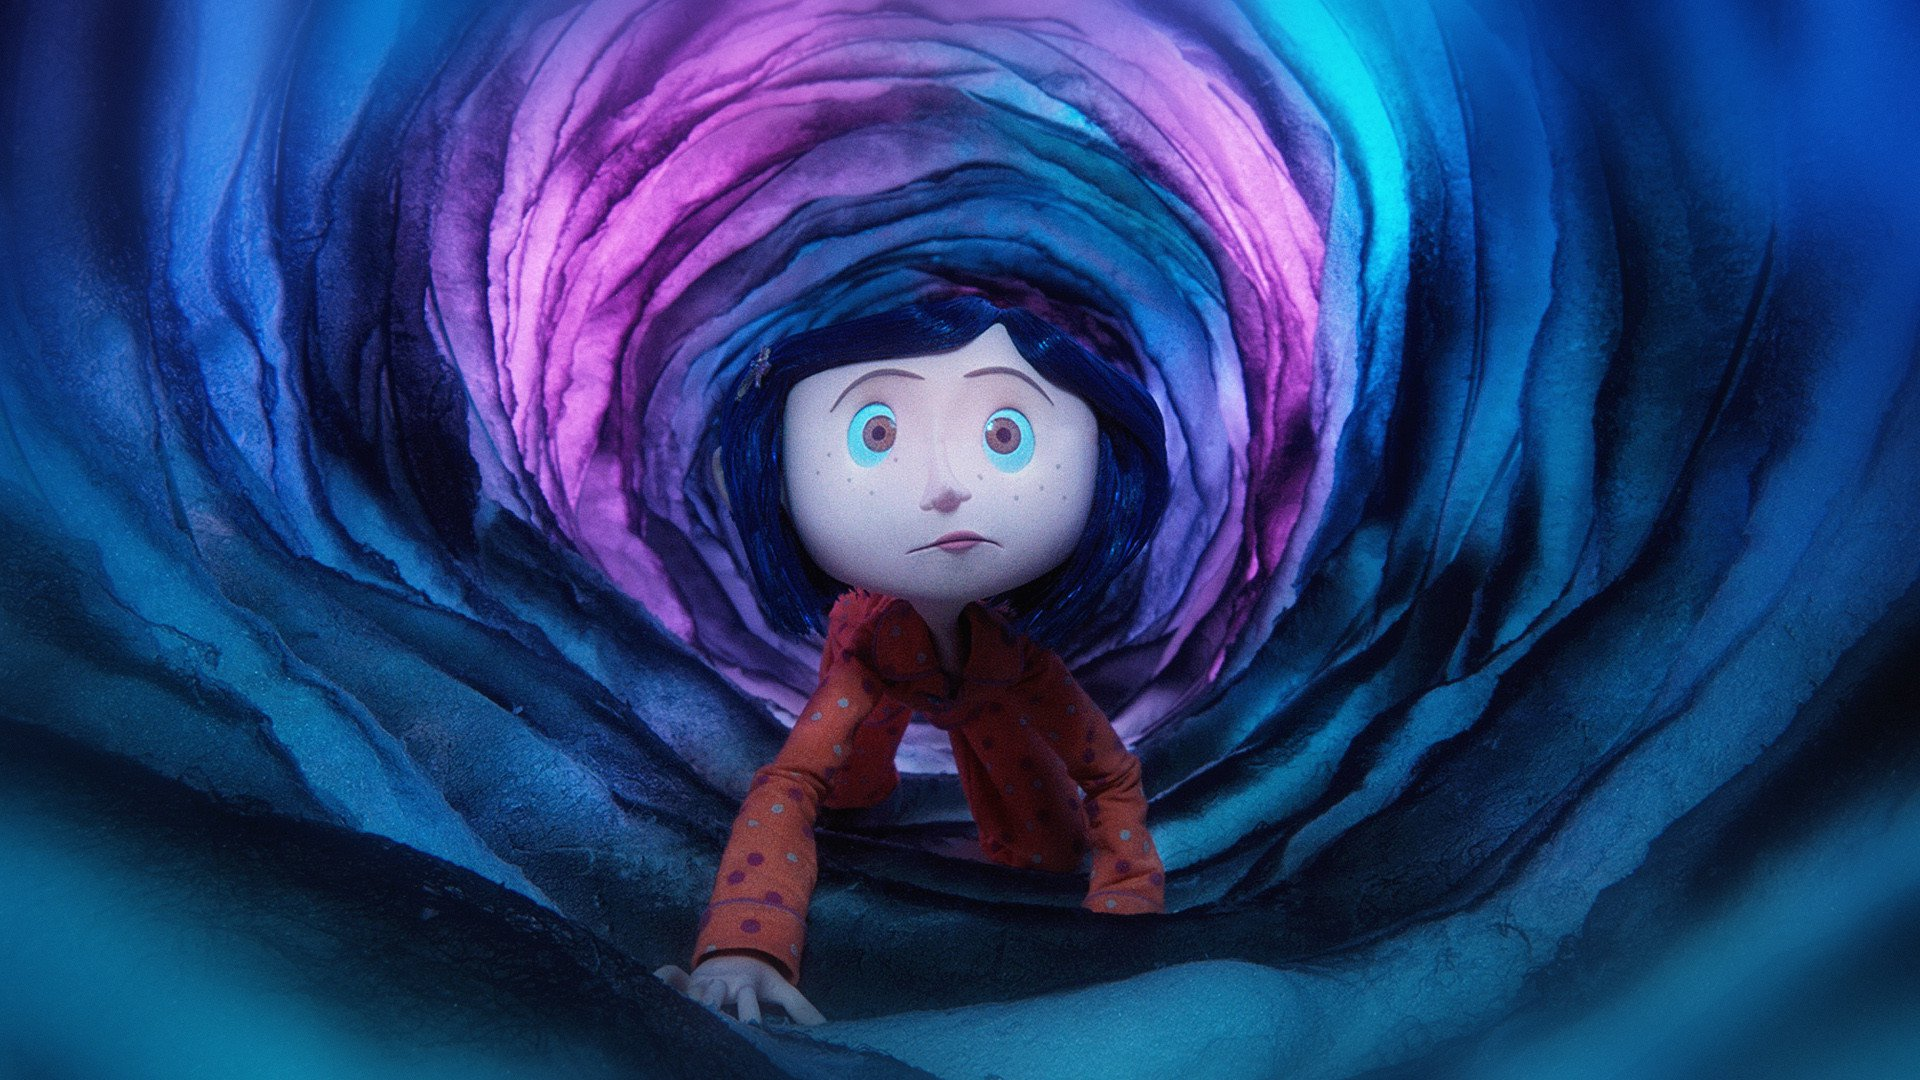 The adventurous Coraline would fit right in to the world of Locke & Key.